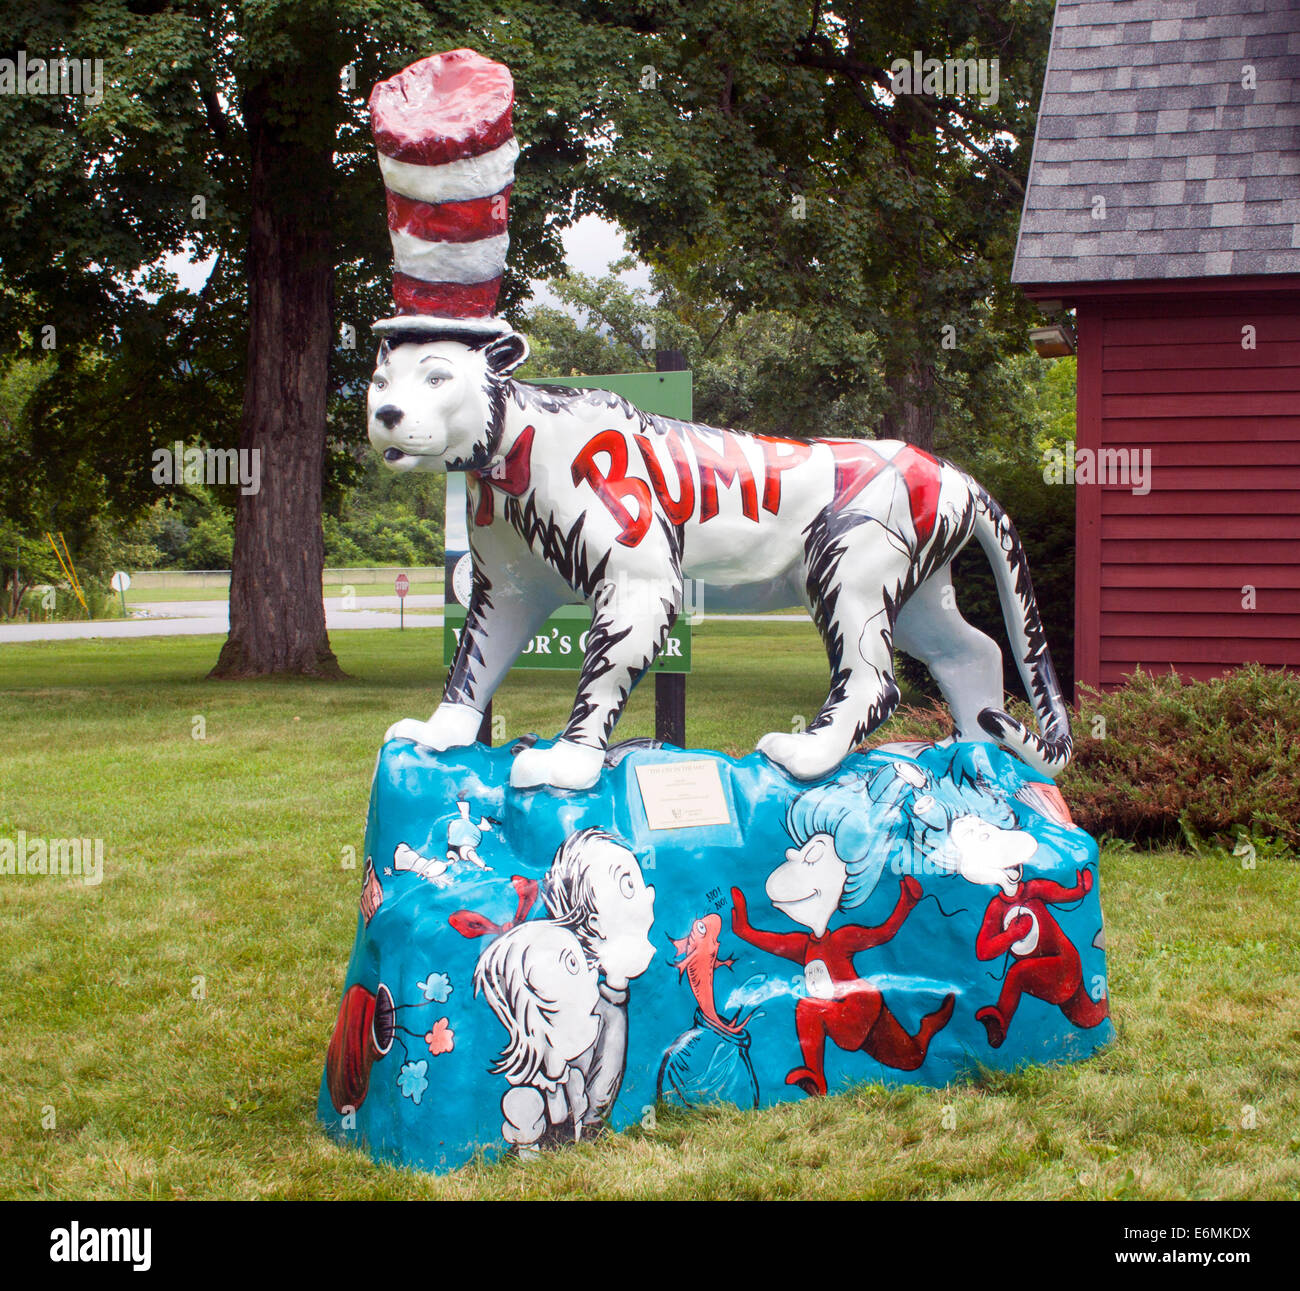 Dr. Seuss street art in Bennington Vermont - Stock Image